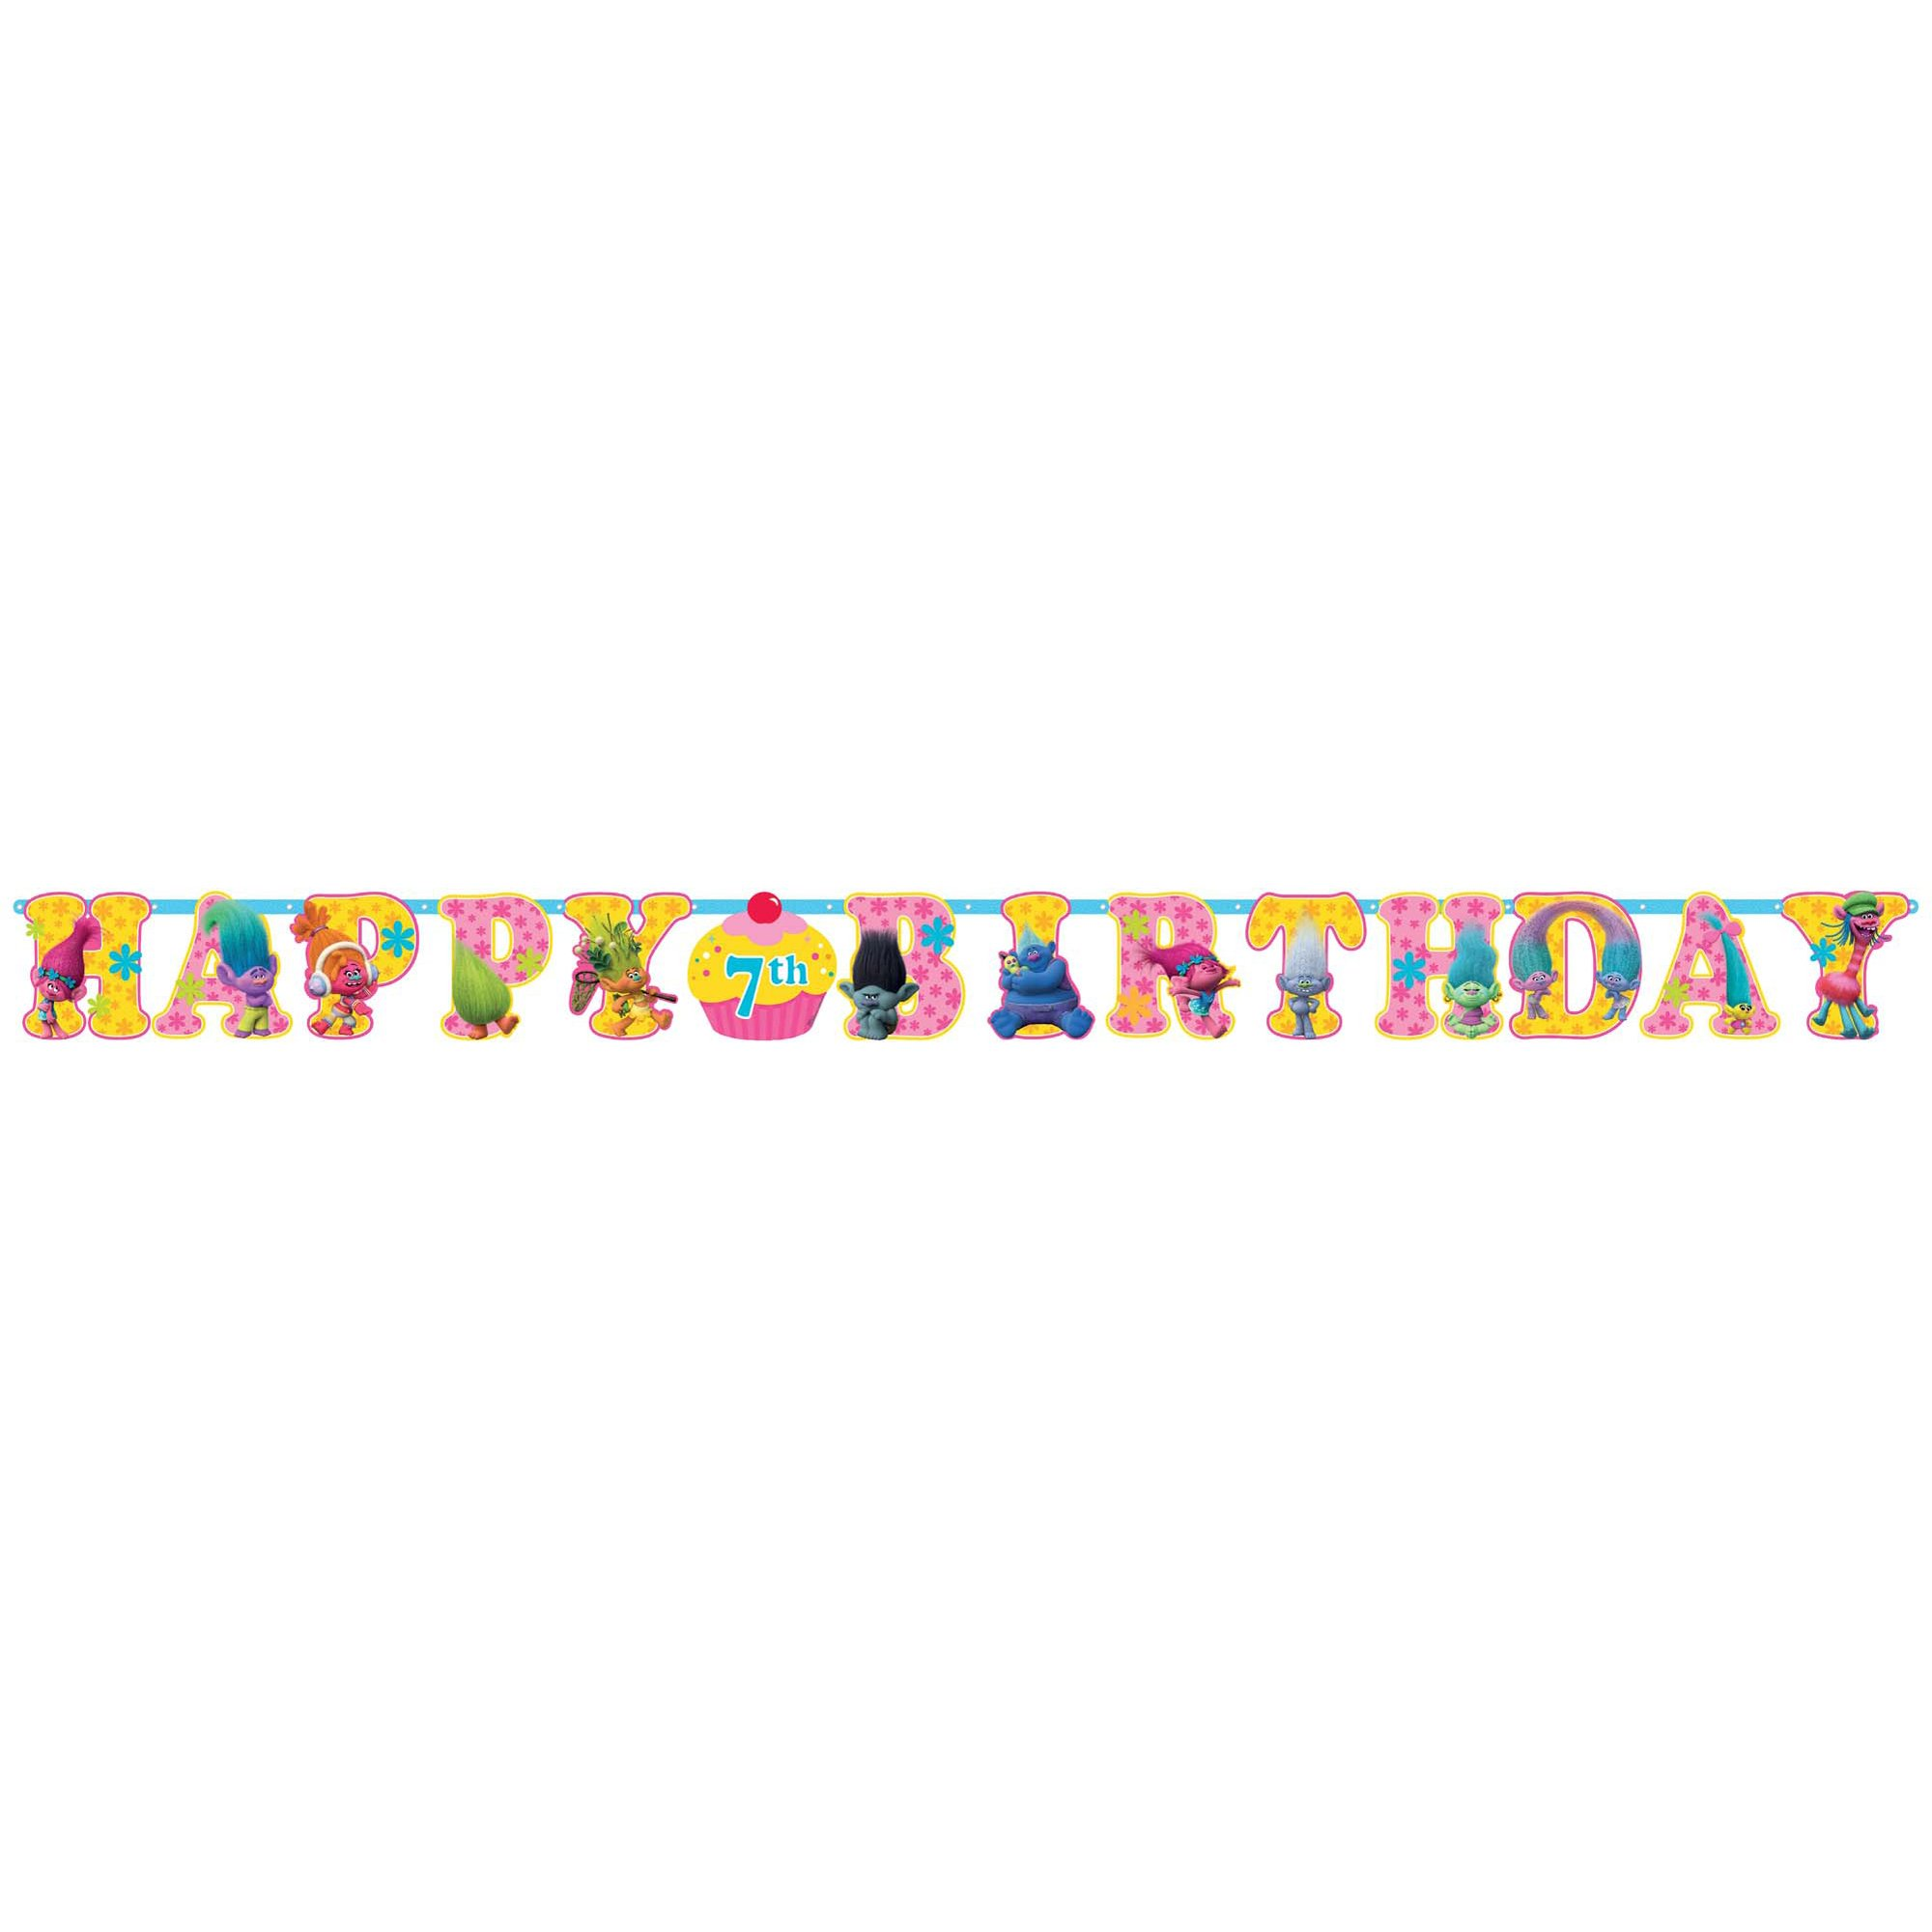 Trolls Happy Birthday Jointed Add-An-Age Cardboard Jumbo Banner